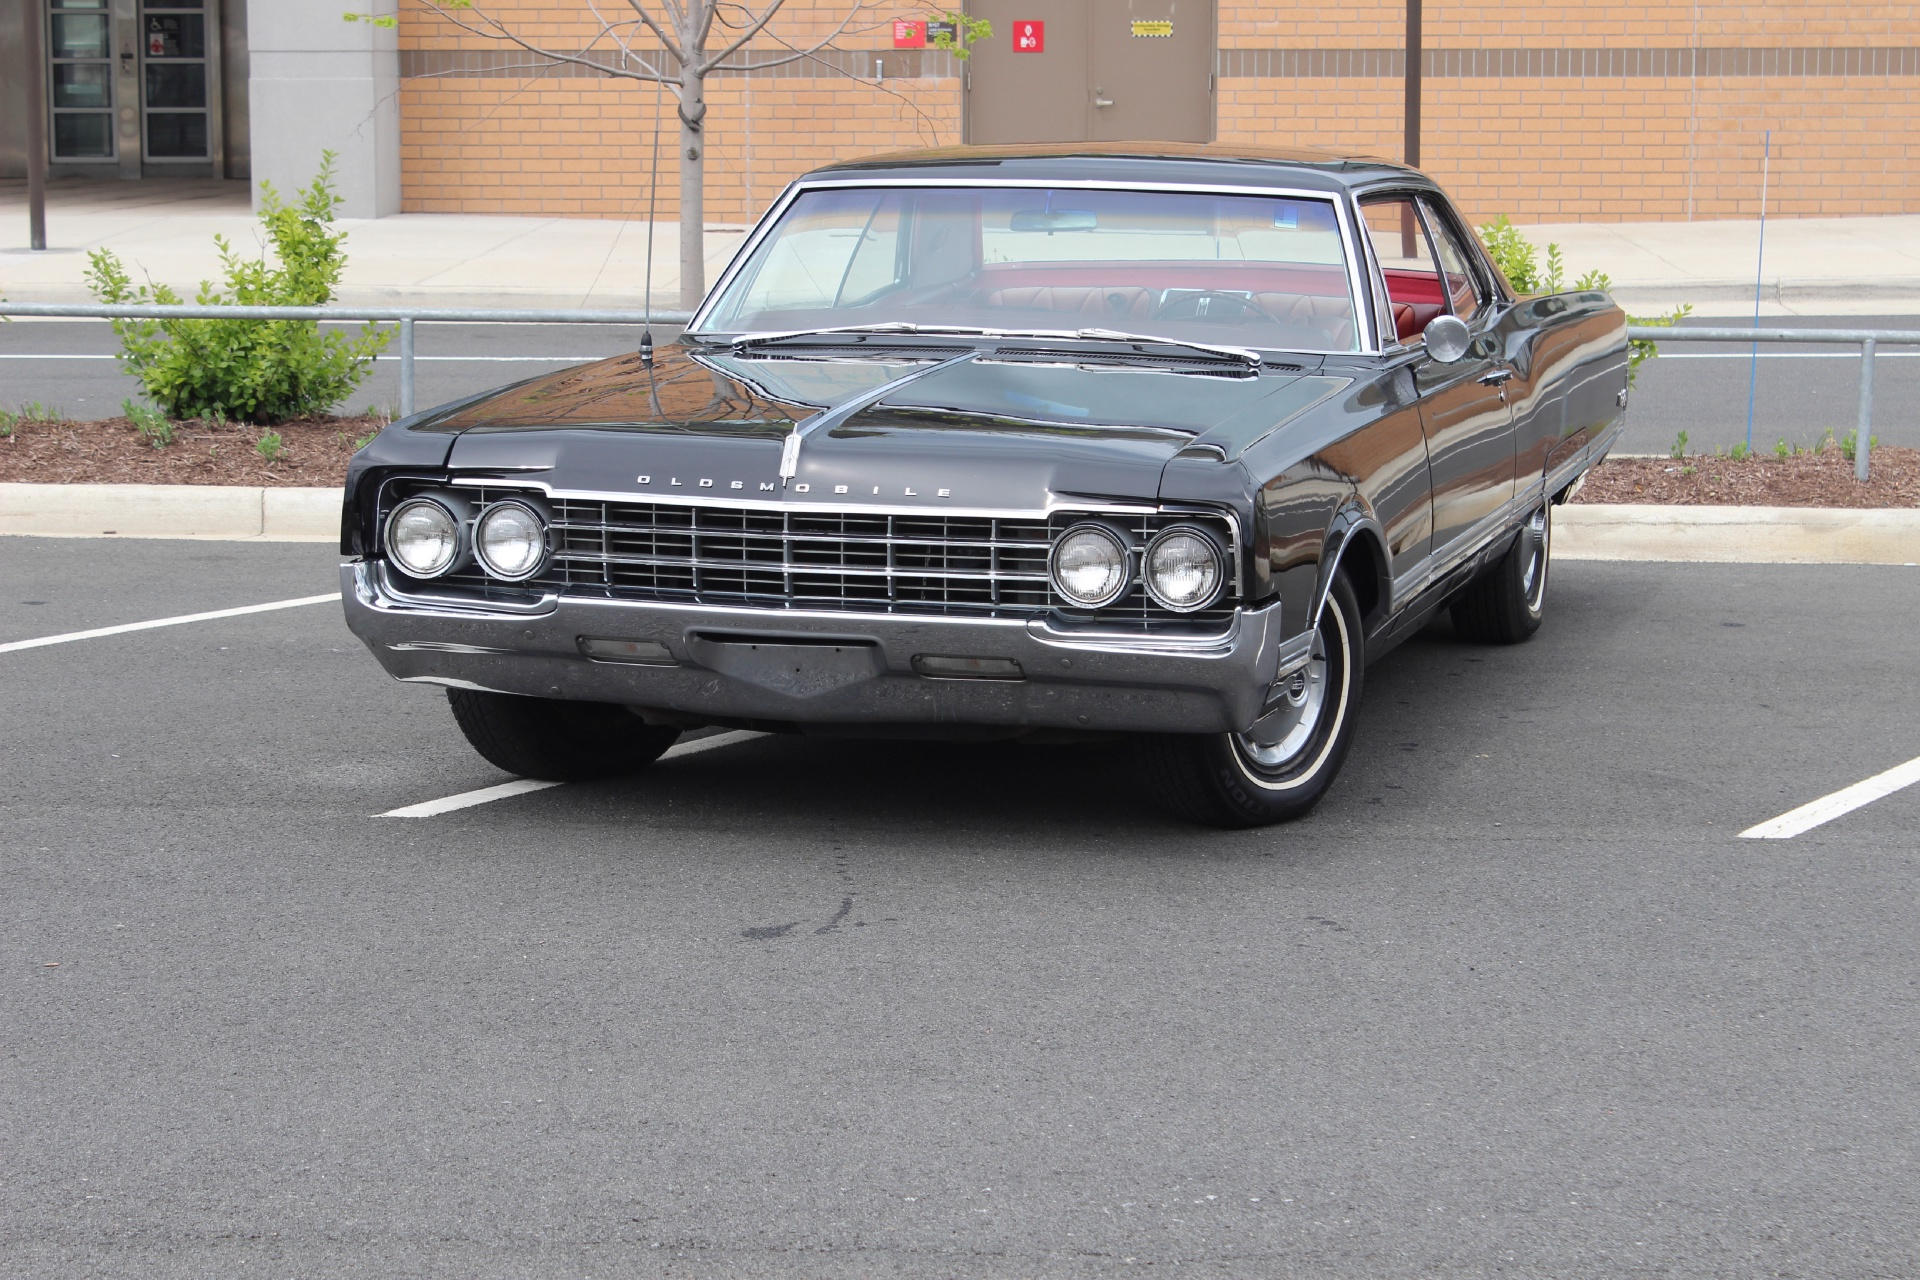 How To Get A Free Carfax Report >> 1965 Oldsmobile 98 Stock # 6NC050847B for sale near Vienna, VA | VA Oldsmobile Dealer For Sale ...